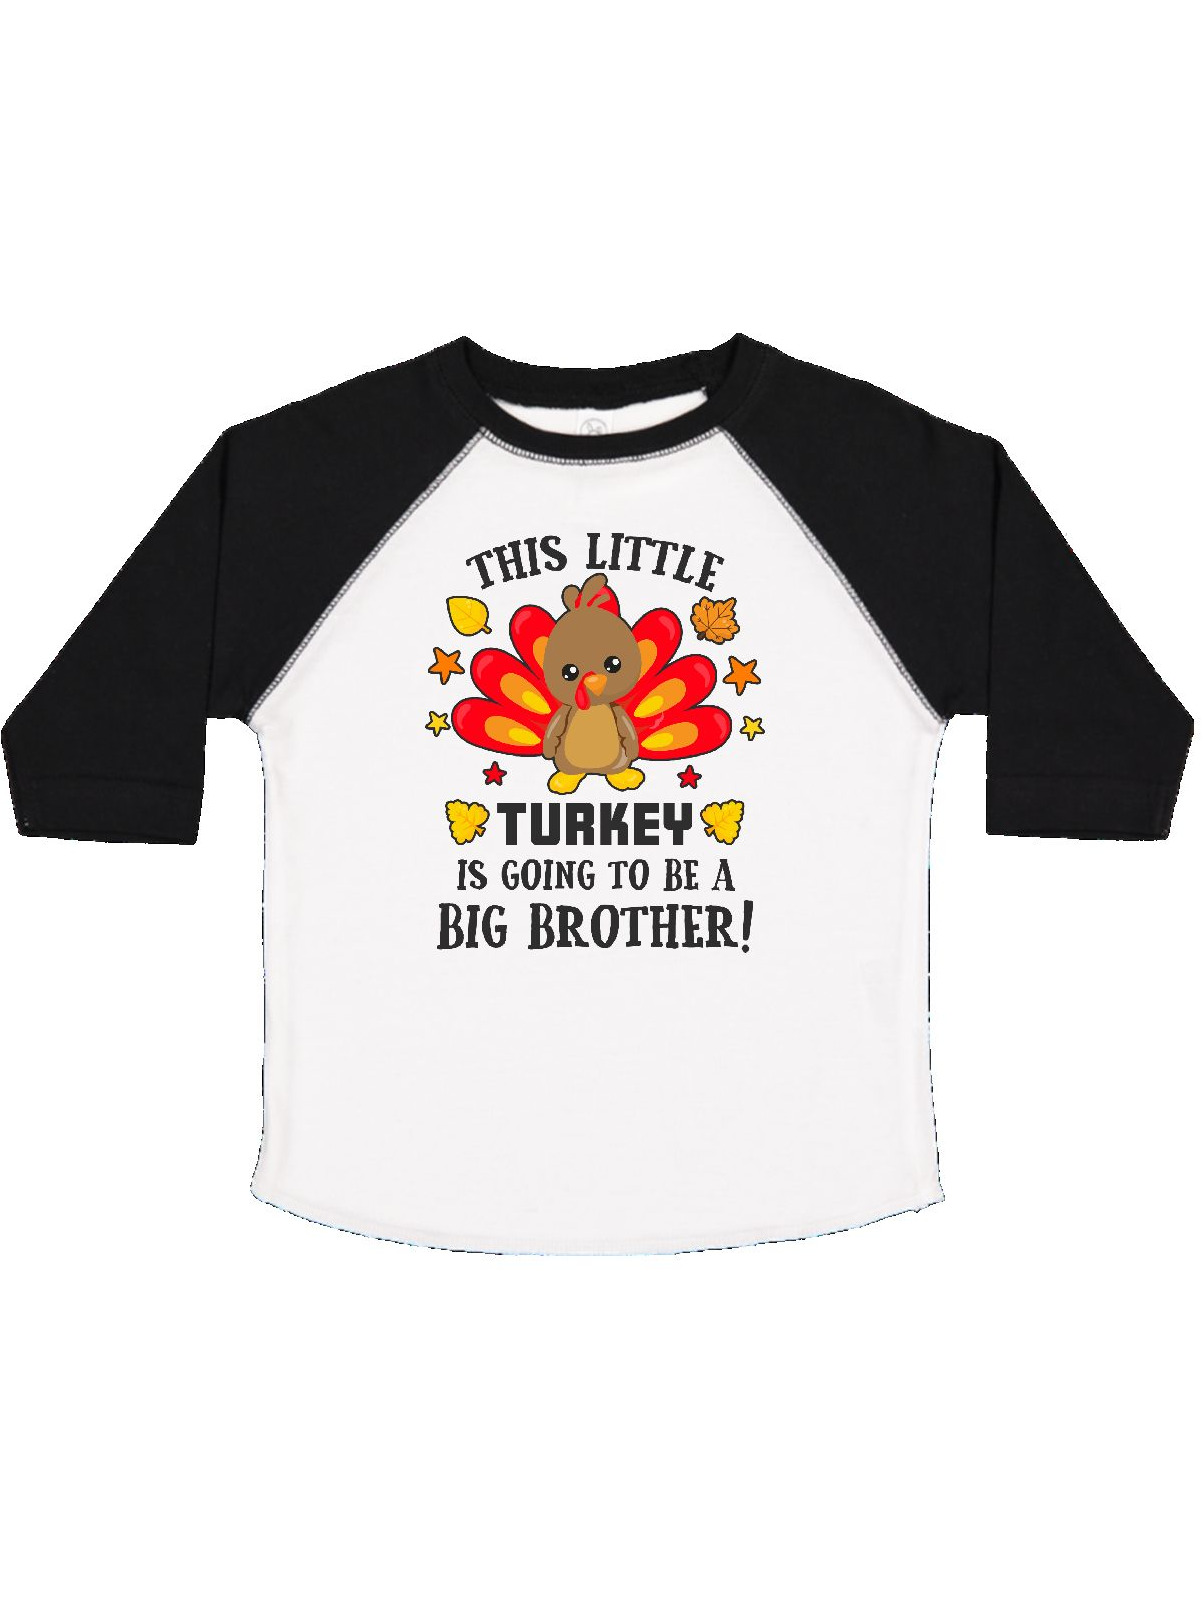 This Little Turkey is Going to be a Big Brother Toddler T-Shirt